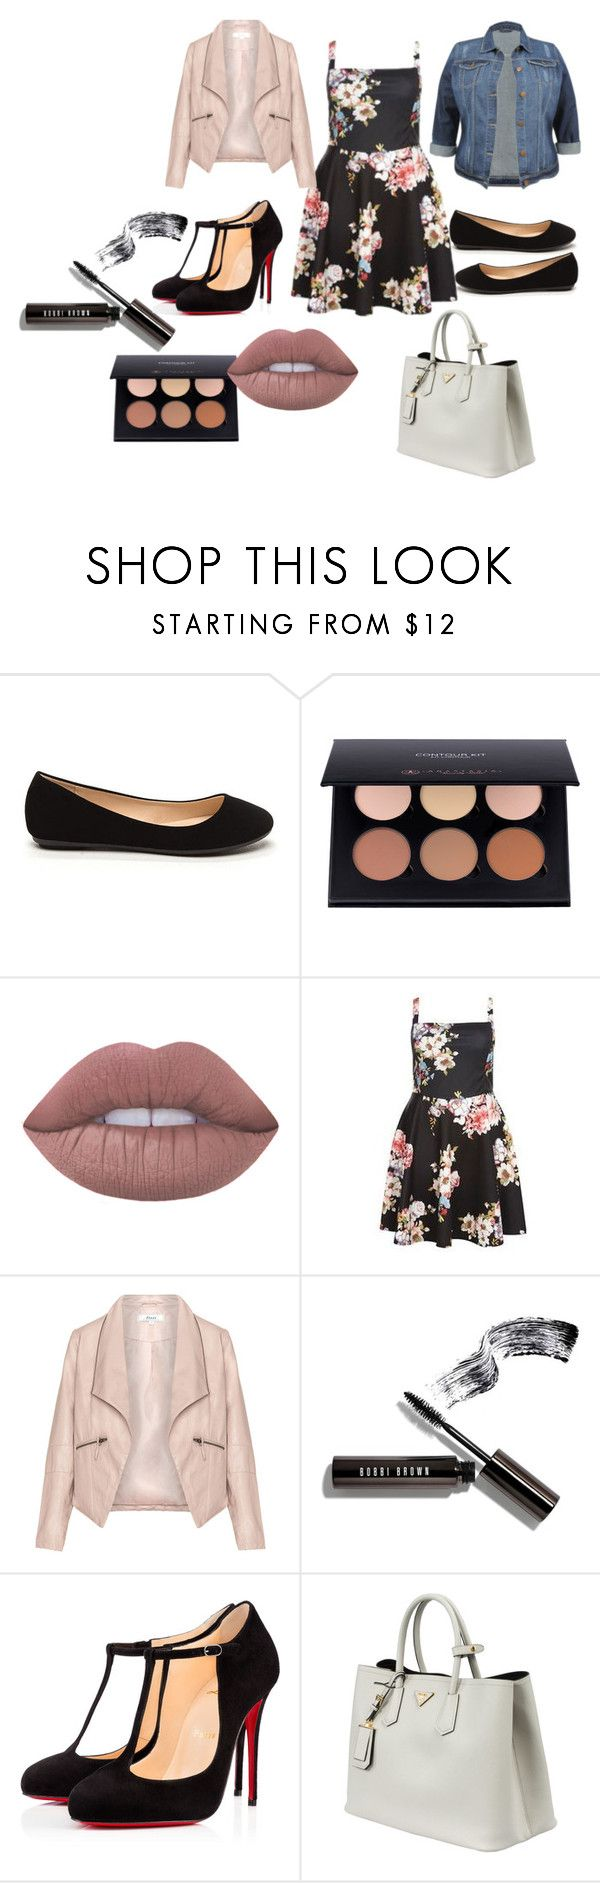 """""""Curvy Date"""" by lynetteamaro on Polyvore featuring Lime Crime, Dorothy Perkins, Zizzi, Bobbi Brown Cosmetics, Christian Louboutin, Prada, SexyandCurvy and curvydate"""